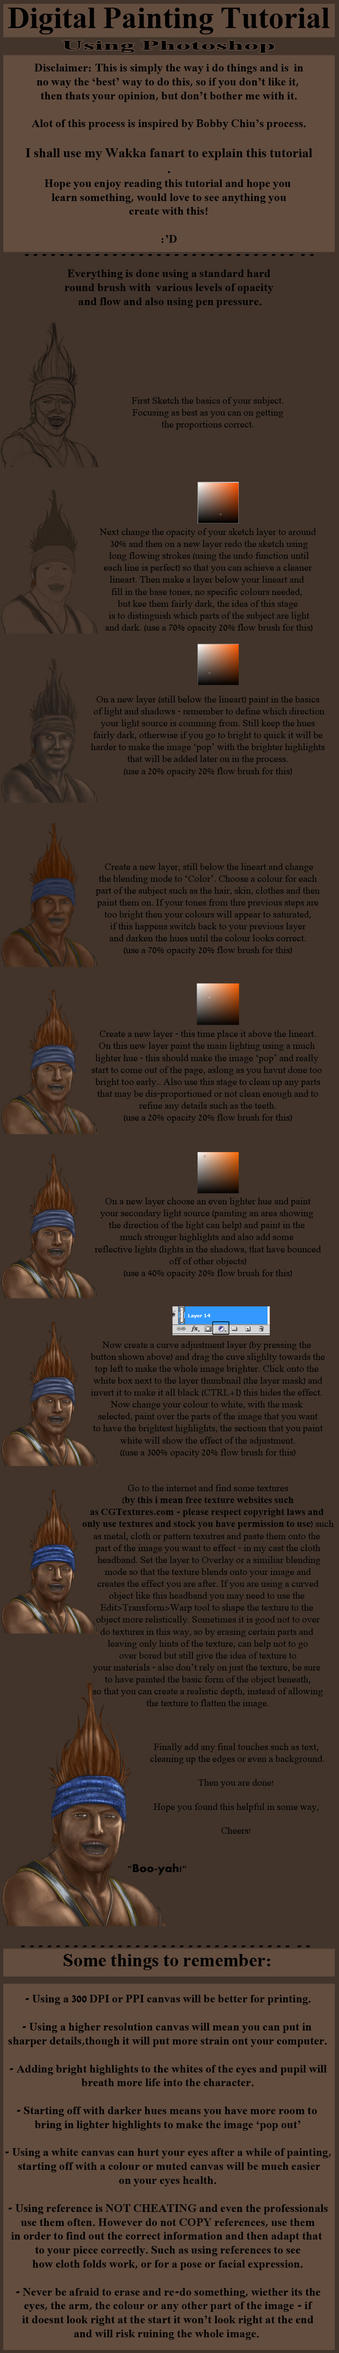 Digital Painting Tutorial by JackEavesArt